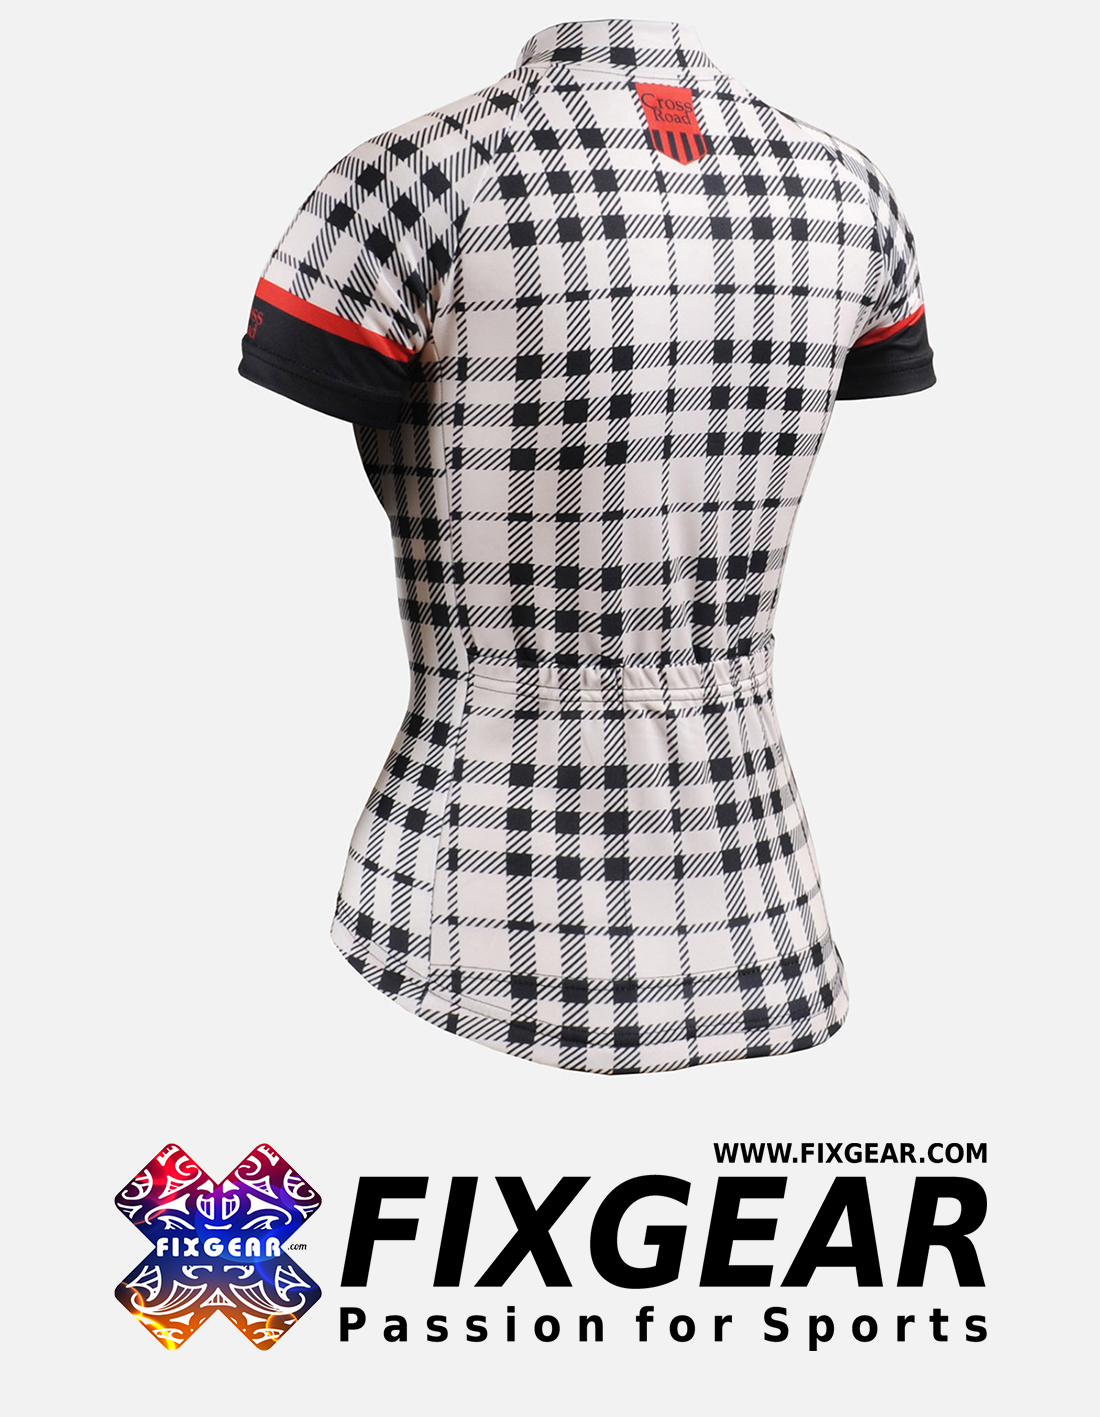 FIXGEAR CS-W102 Women's Short Sleeve Jersey